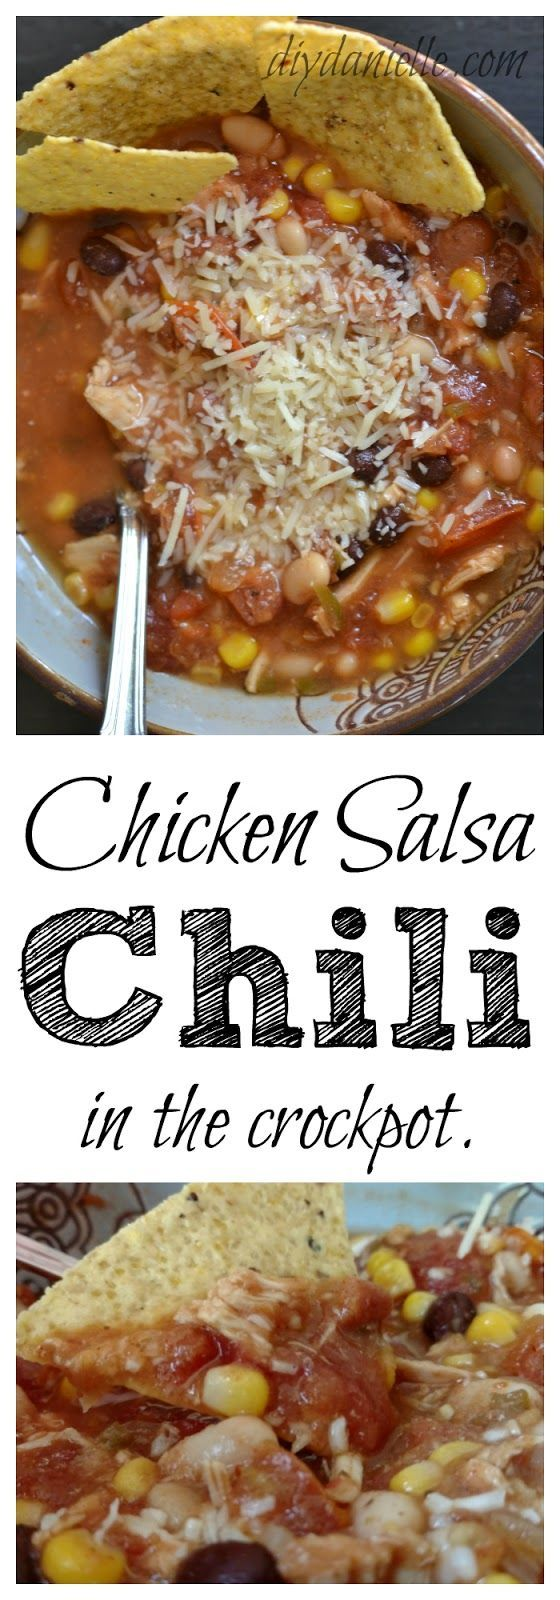 This chicken salsa chili can be made in the crockpot and it tastes oh-so-good!